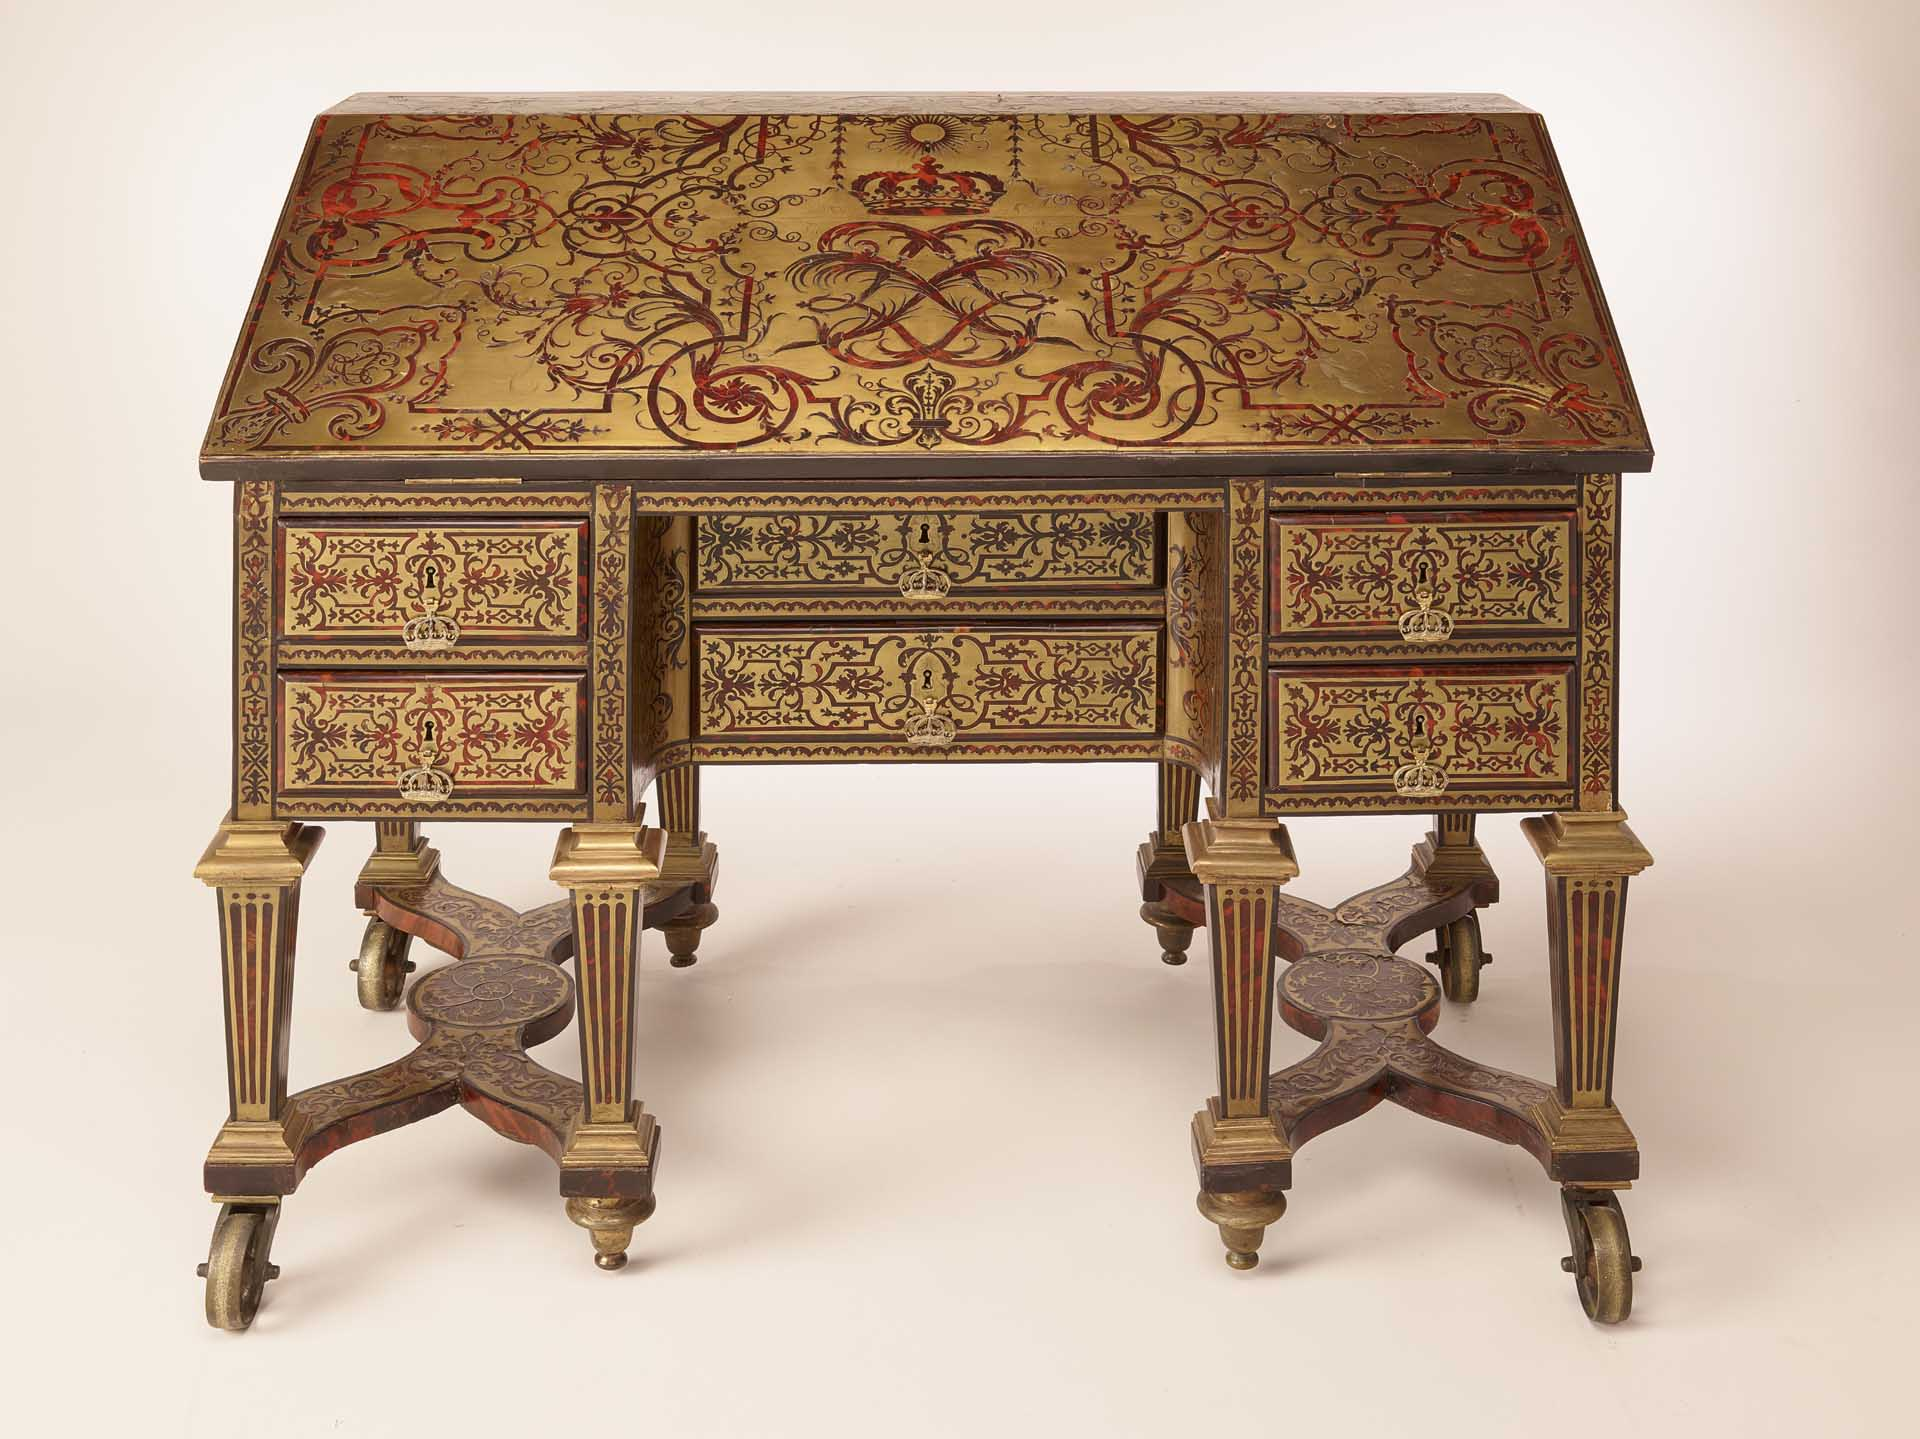 It Would Seem However That The Rich Scrolls Were Not Quite To Taste Of Louis Xv Who Had Desk Sold In 1751 Next Surfaced England